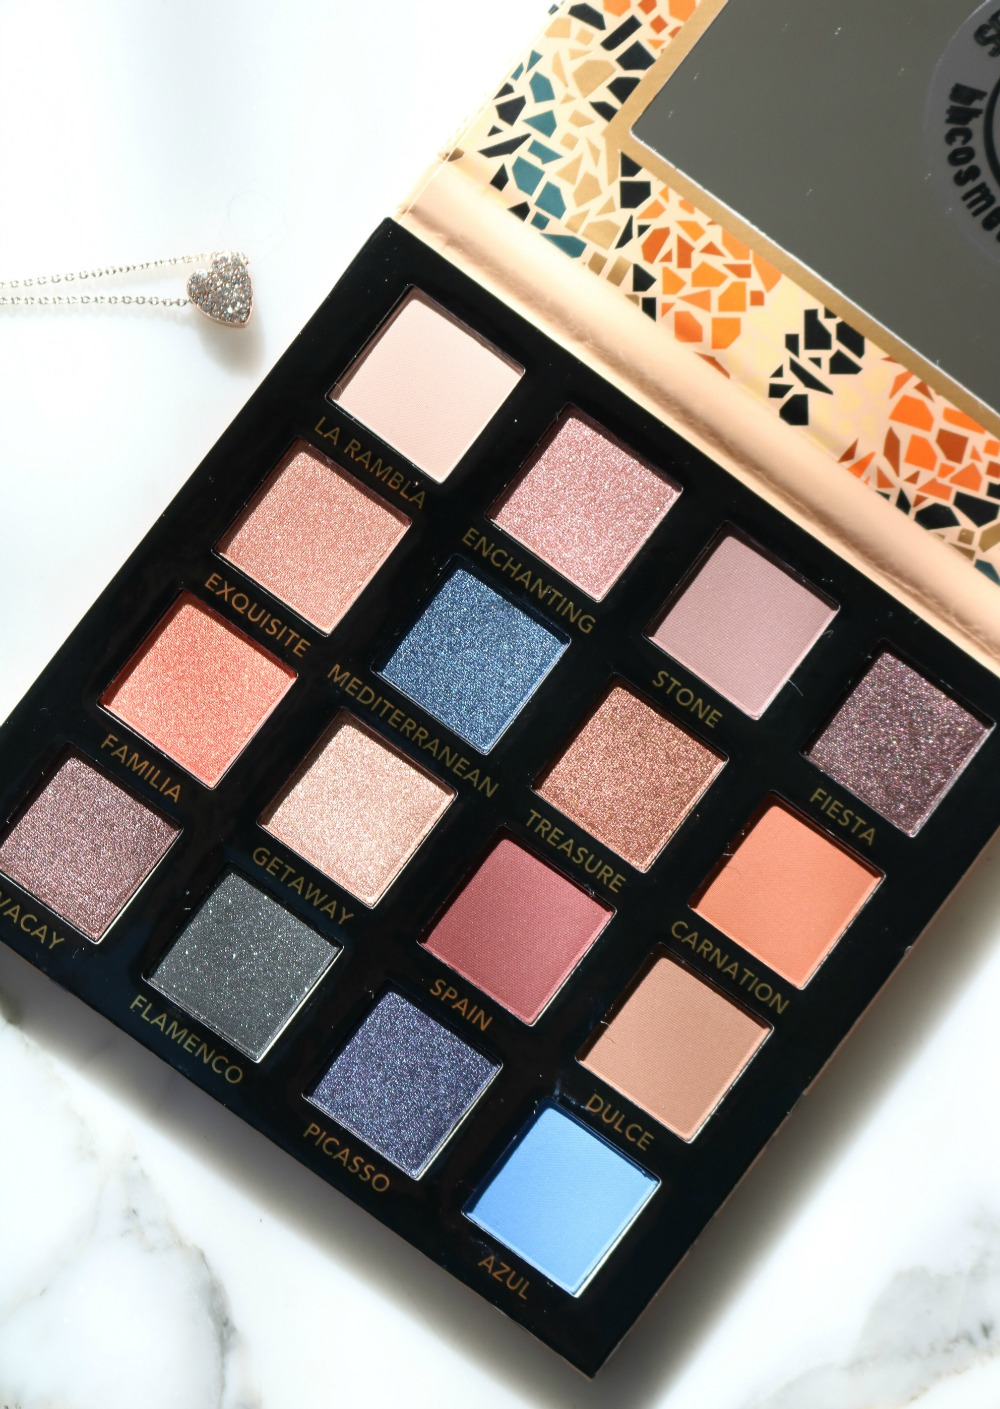 New Drugstore Makeup Testing I BH Cosmetics Barcelona Eyeshadow Palette